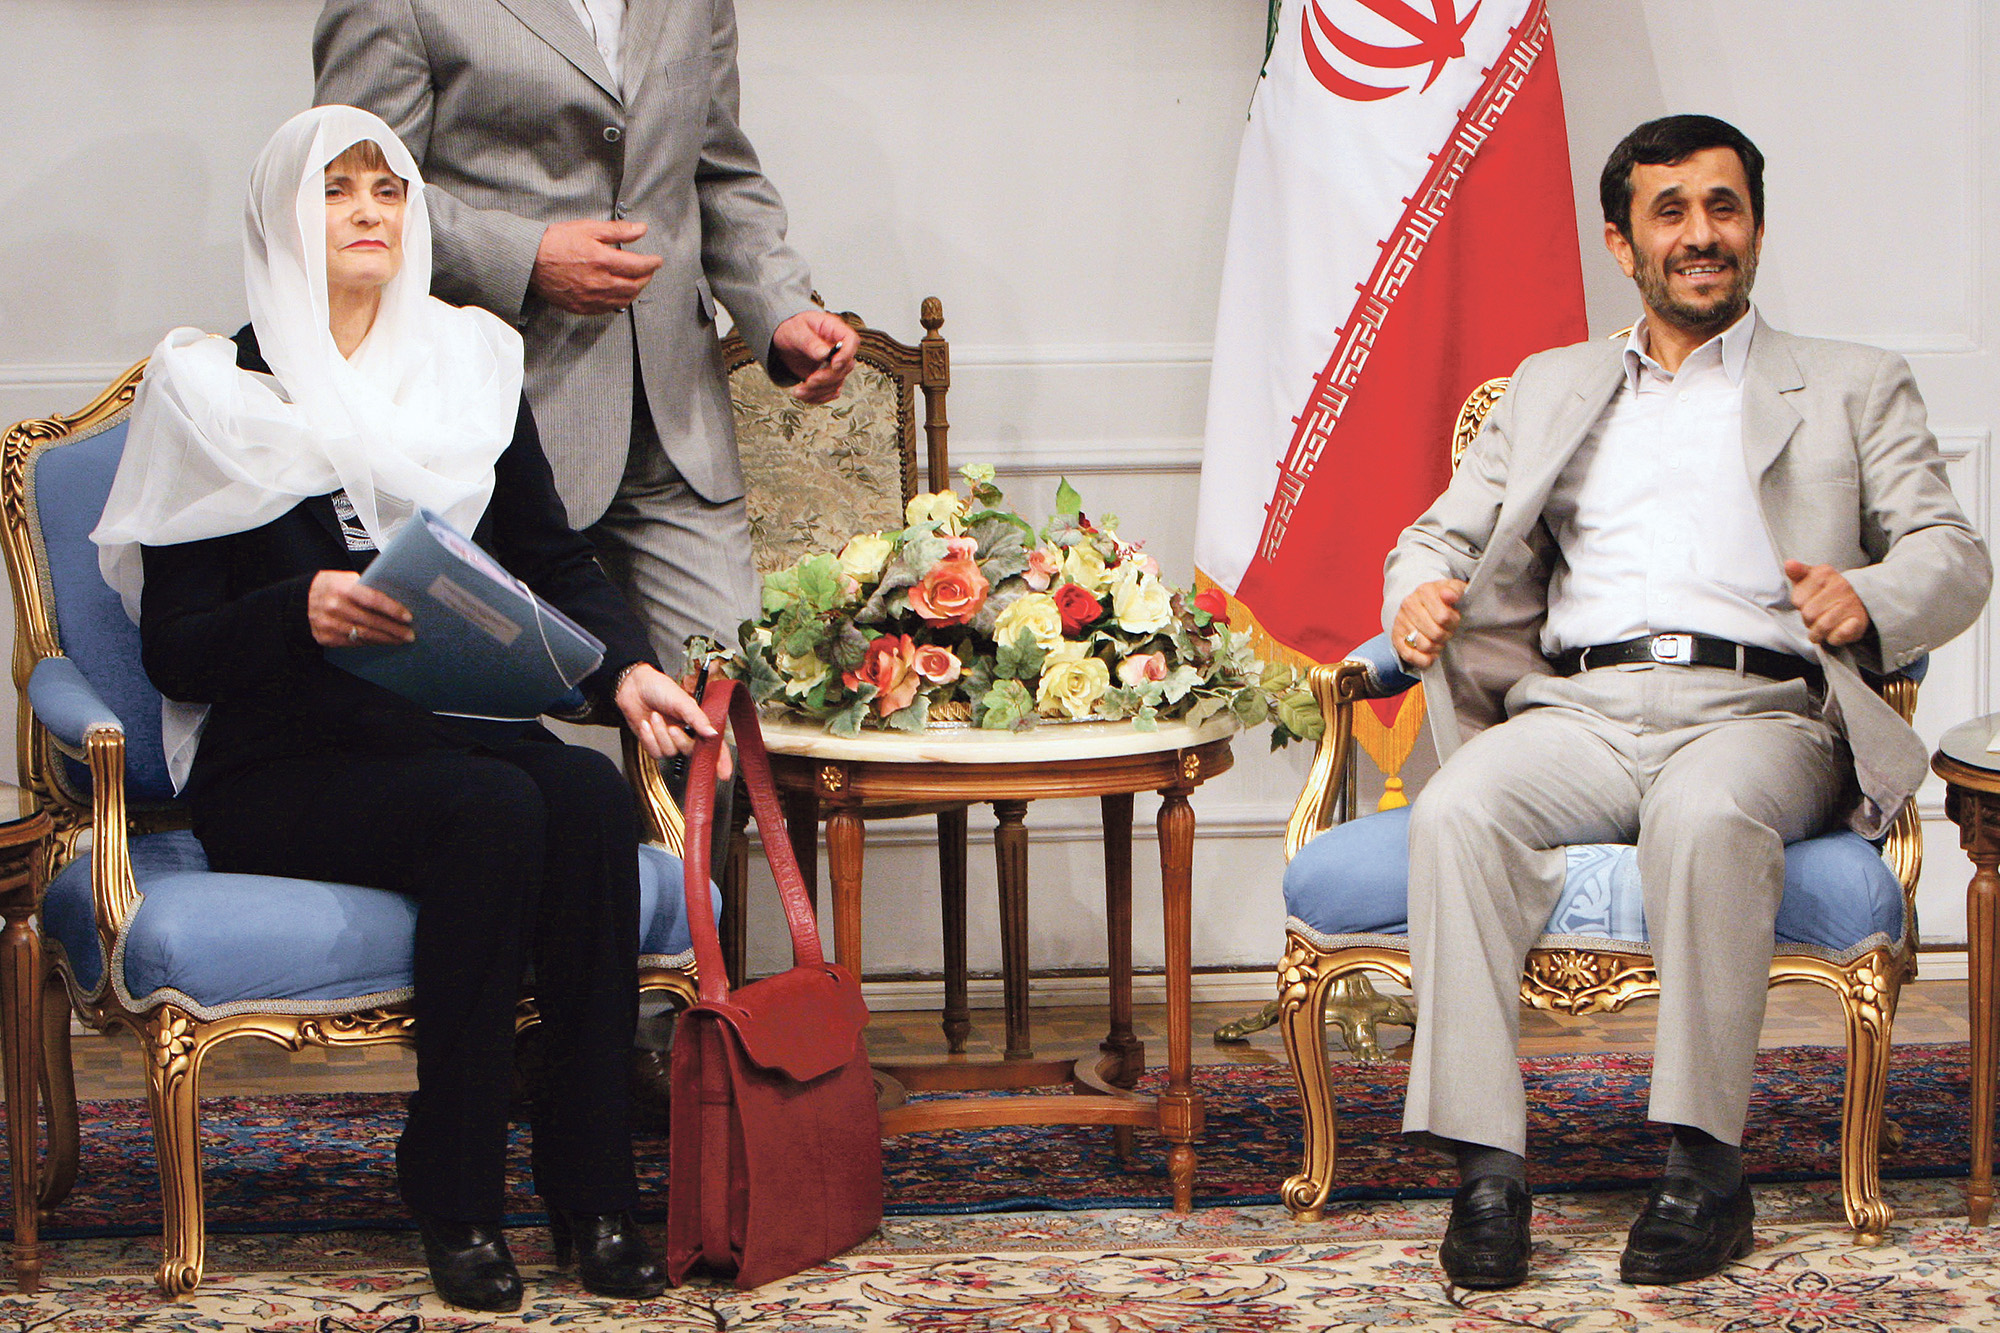 Iranian President Mahmoud Ahmadinejad, right, looks on during a meeting with Swiss Foreign Minister Micheline Calmy-Rey, left